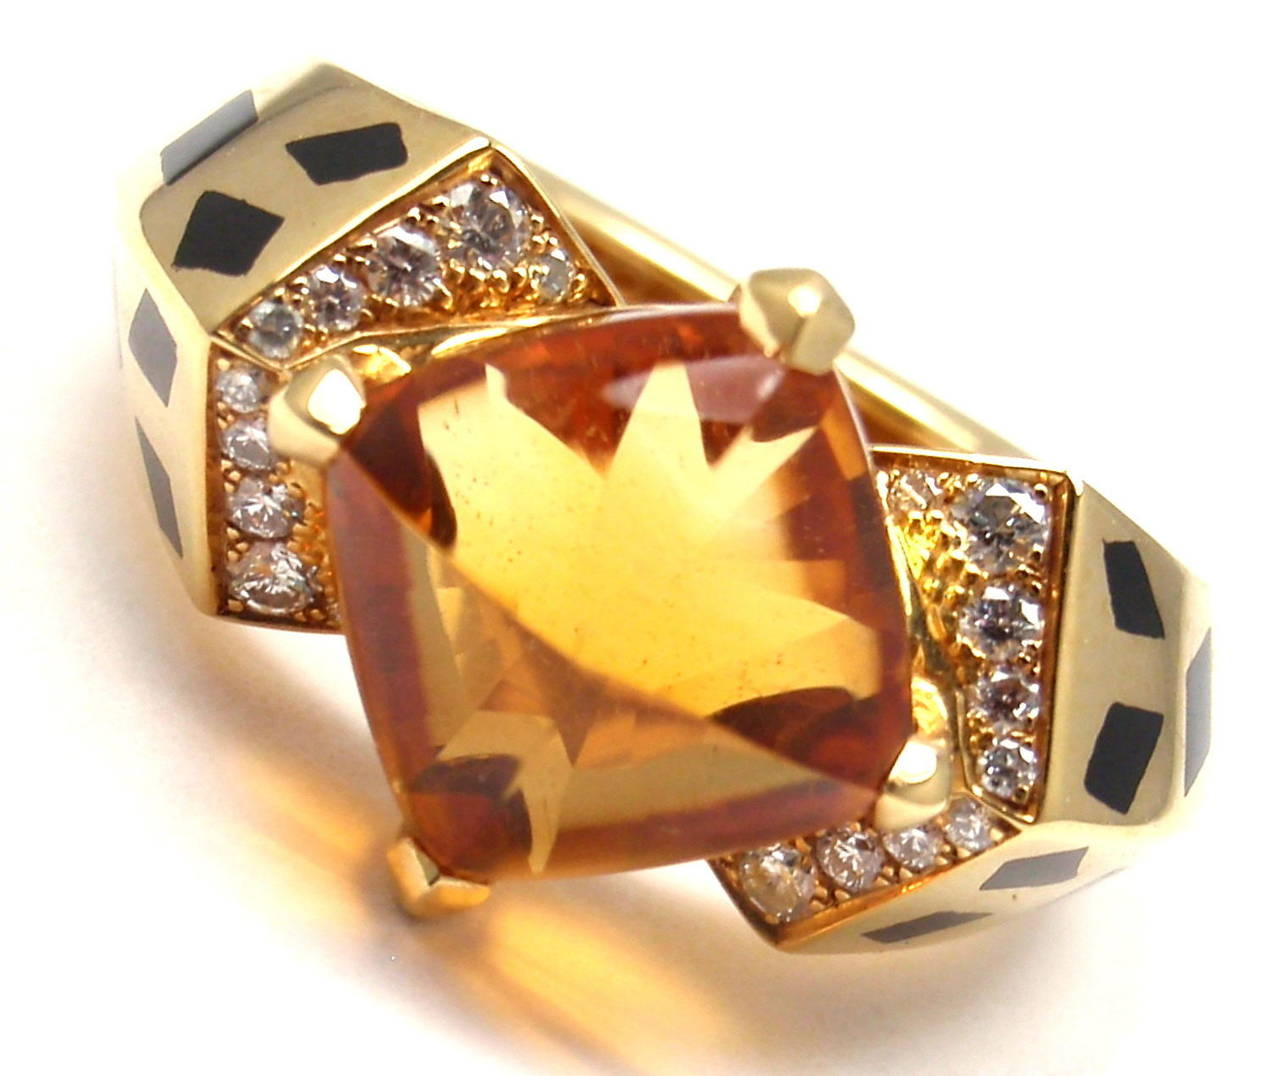 18k Yellow Gold Diamond, Citrine and Black Lacquer Ring by Cartier.  With 1 citrine stone 11mm x 11mm and  20 round brilliant cut diamonds VS1 clarity E color total weight approx. .50ct This ring comes with an original Cartier